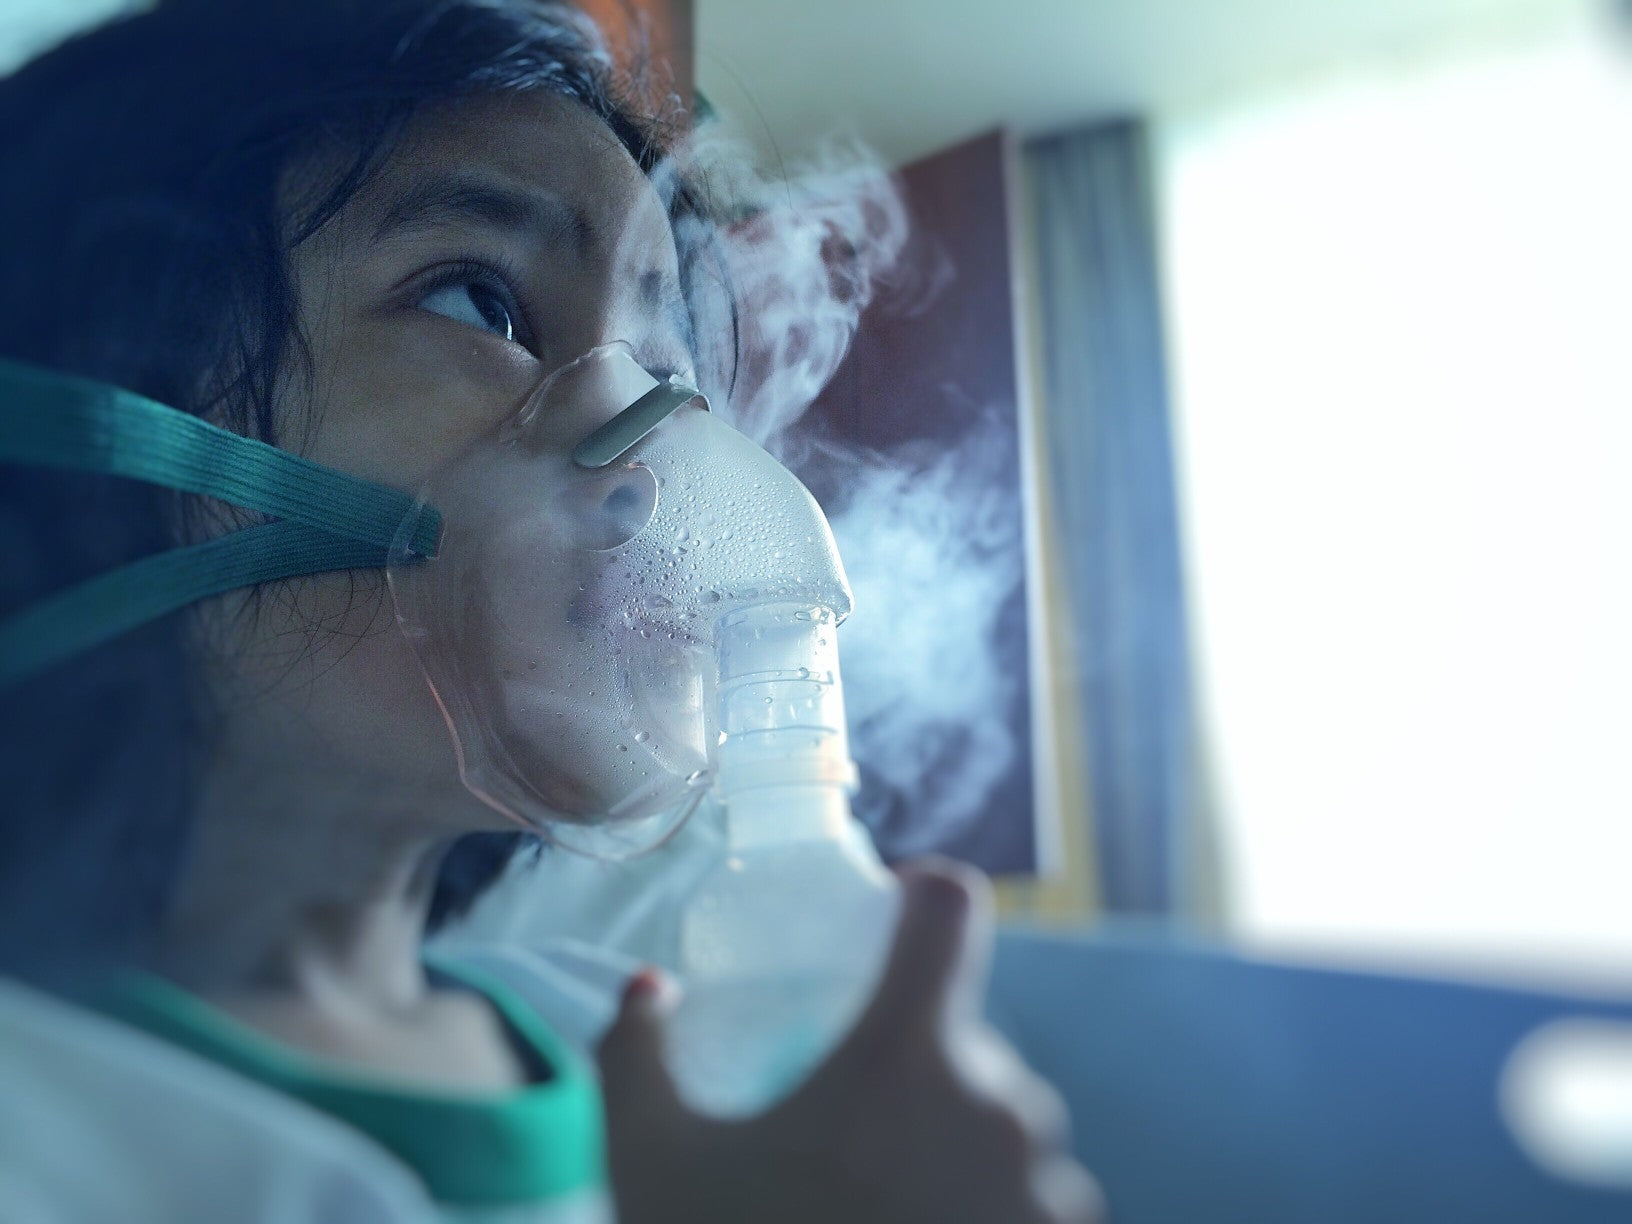 What precautions to take if you are an asthmatic?